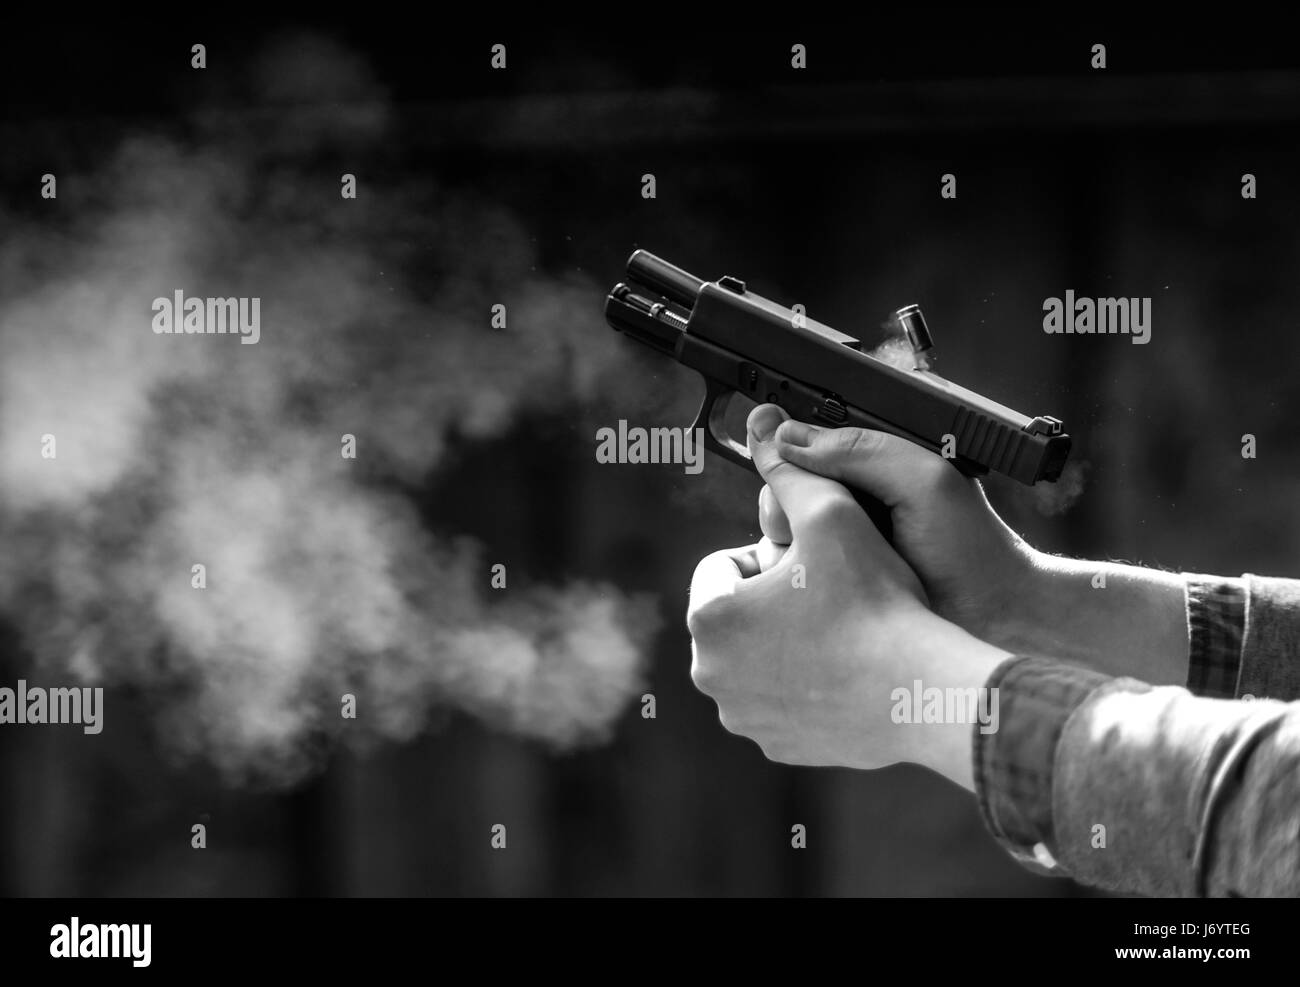 Pistol shot, weapon recoil, scaly - Stock Image